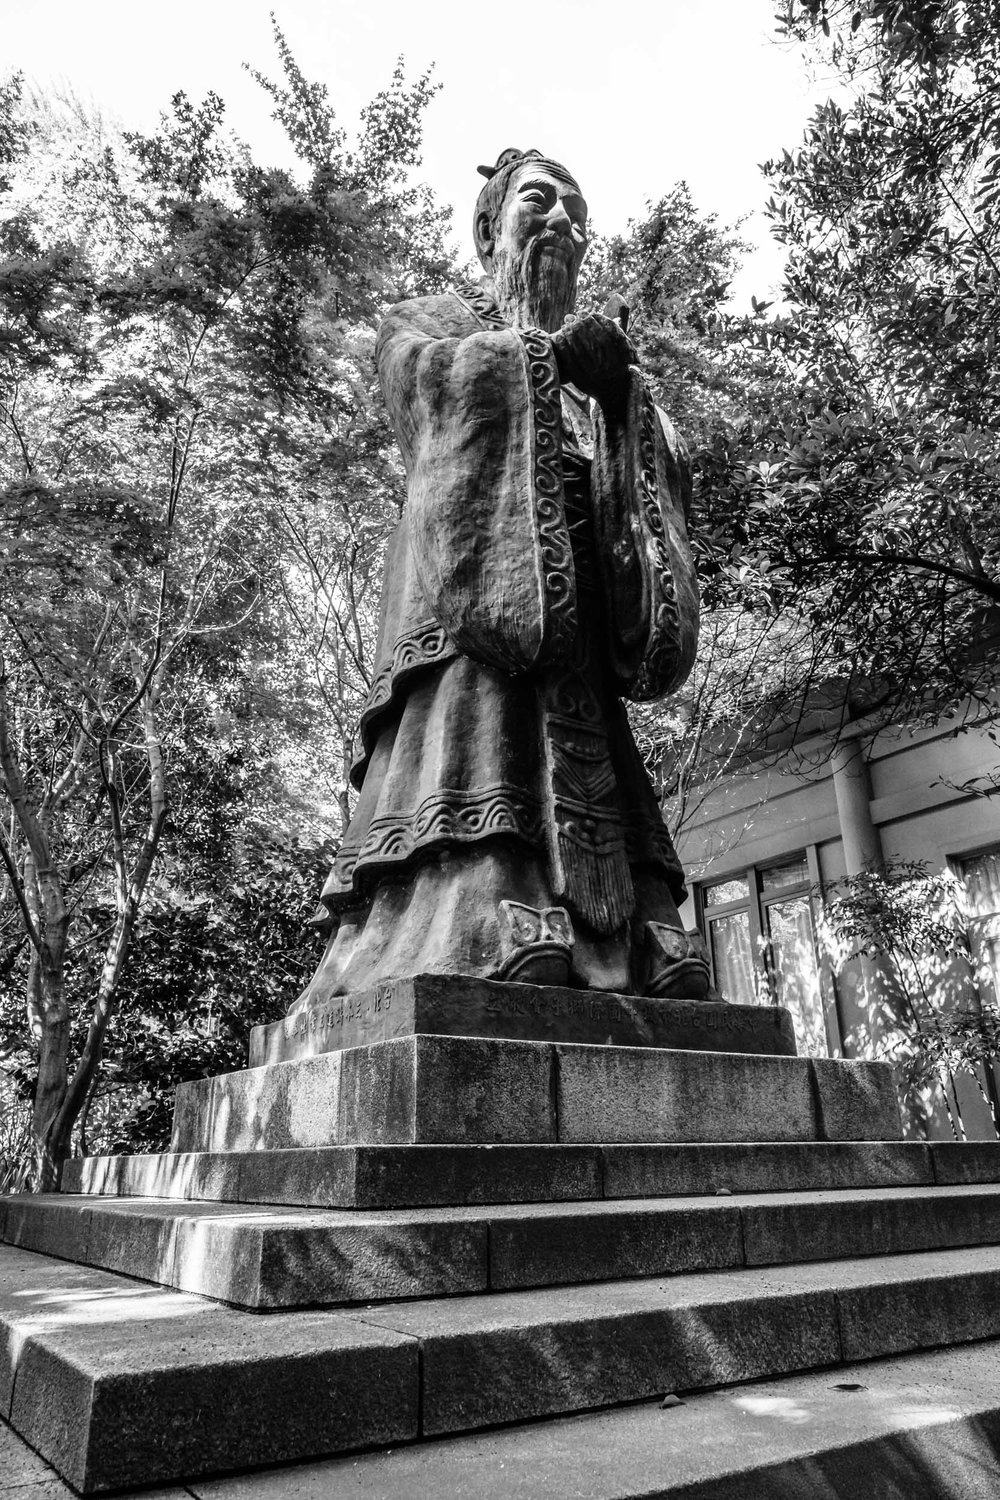 The world's largest bronze statue of Confucius at Yushima Seido